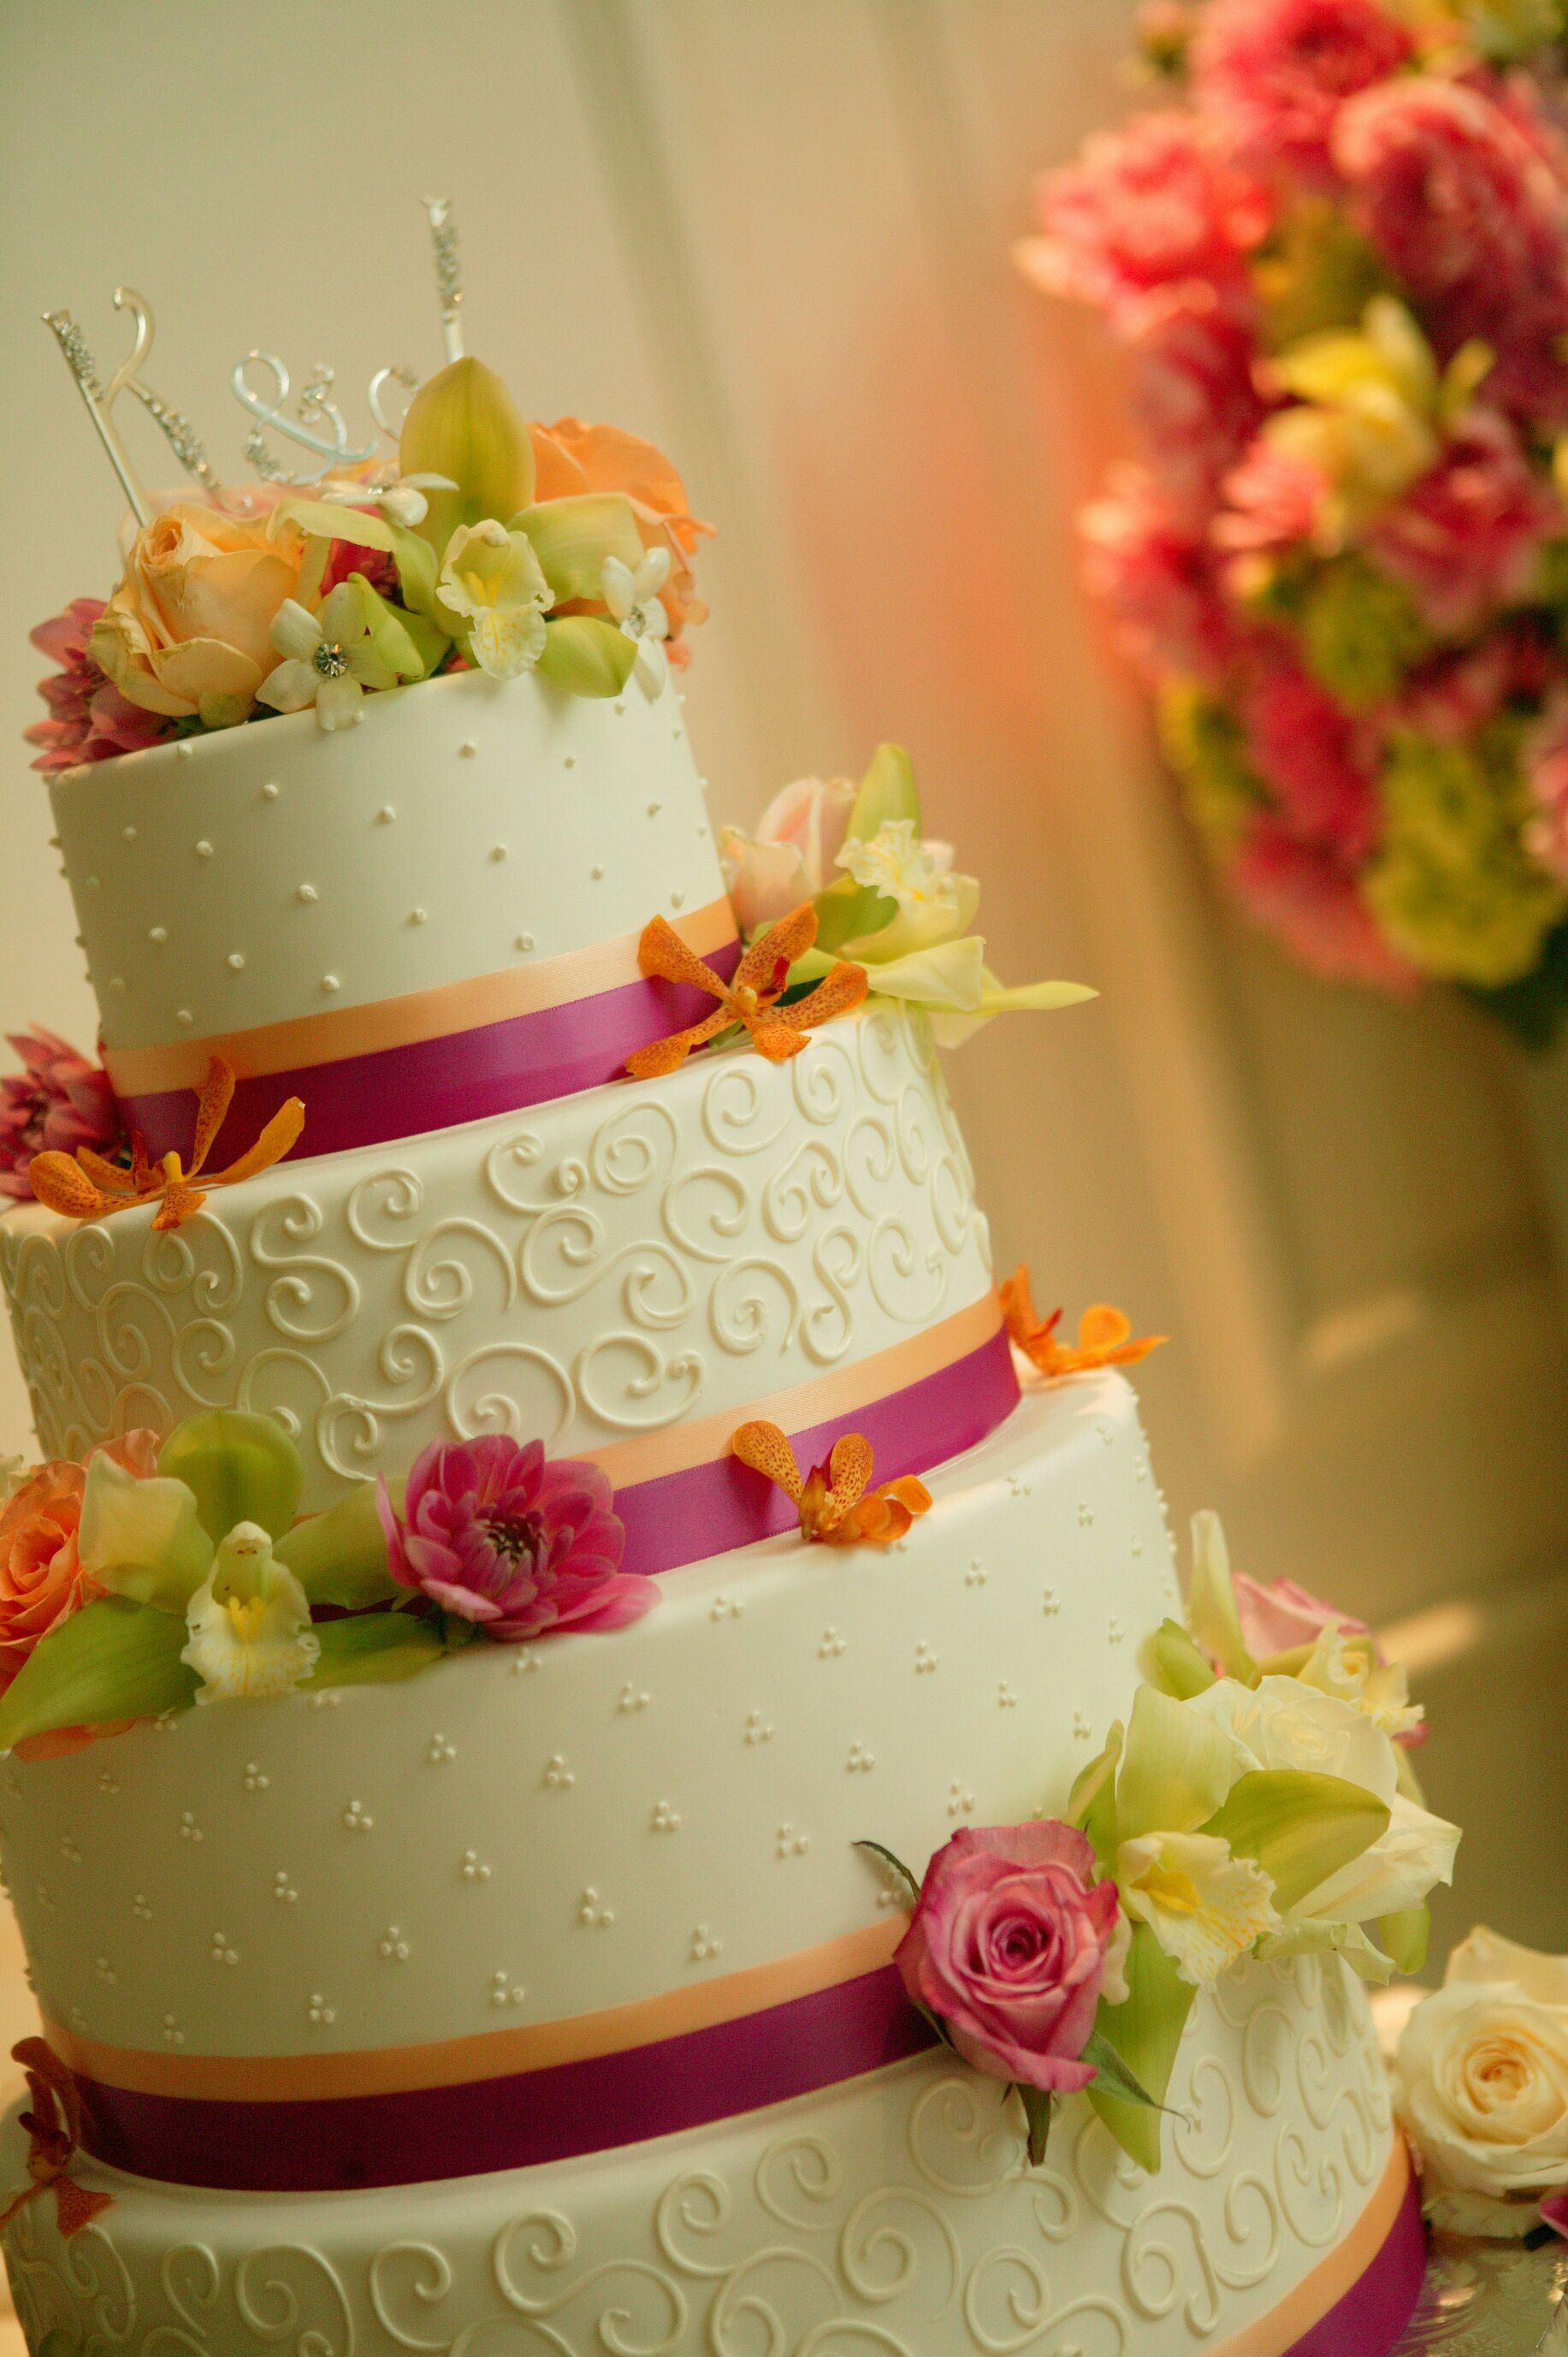 Wedding Cake Bakeries in Seattle, WA - The Knot